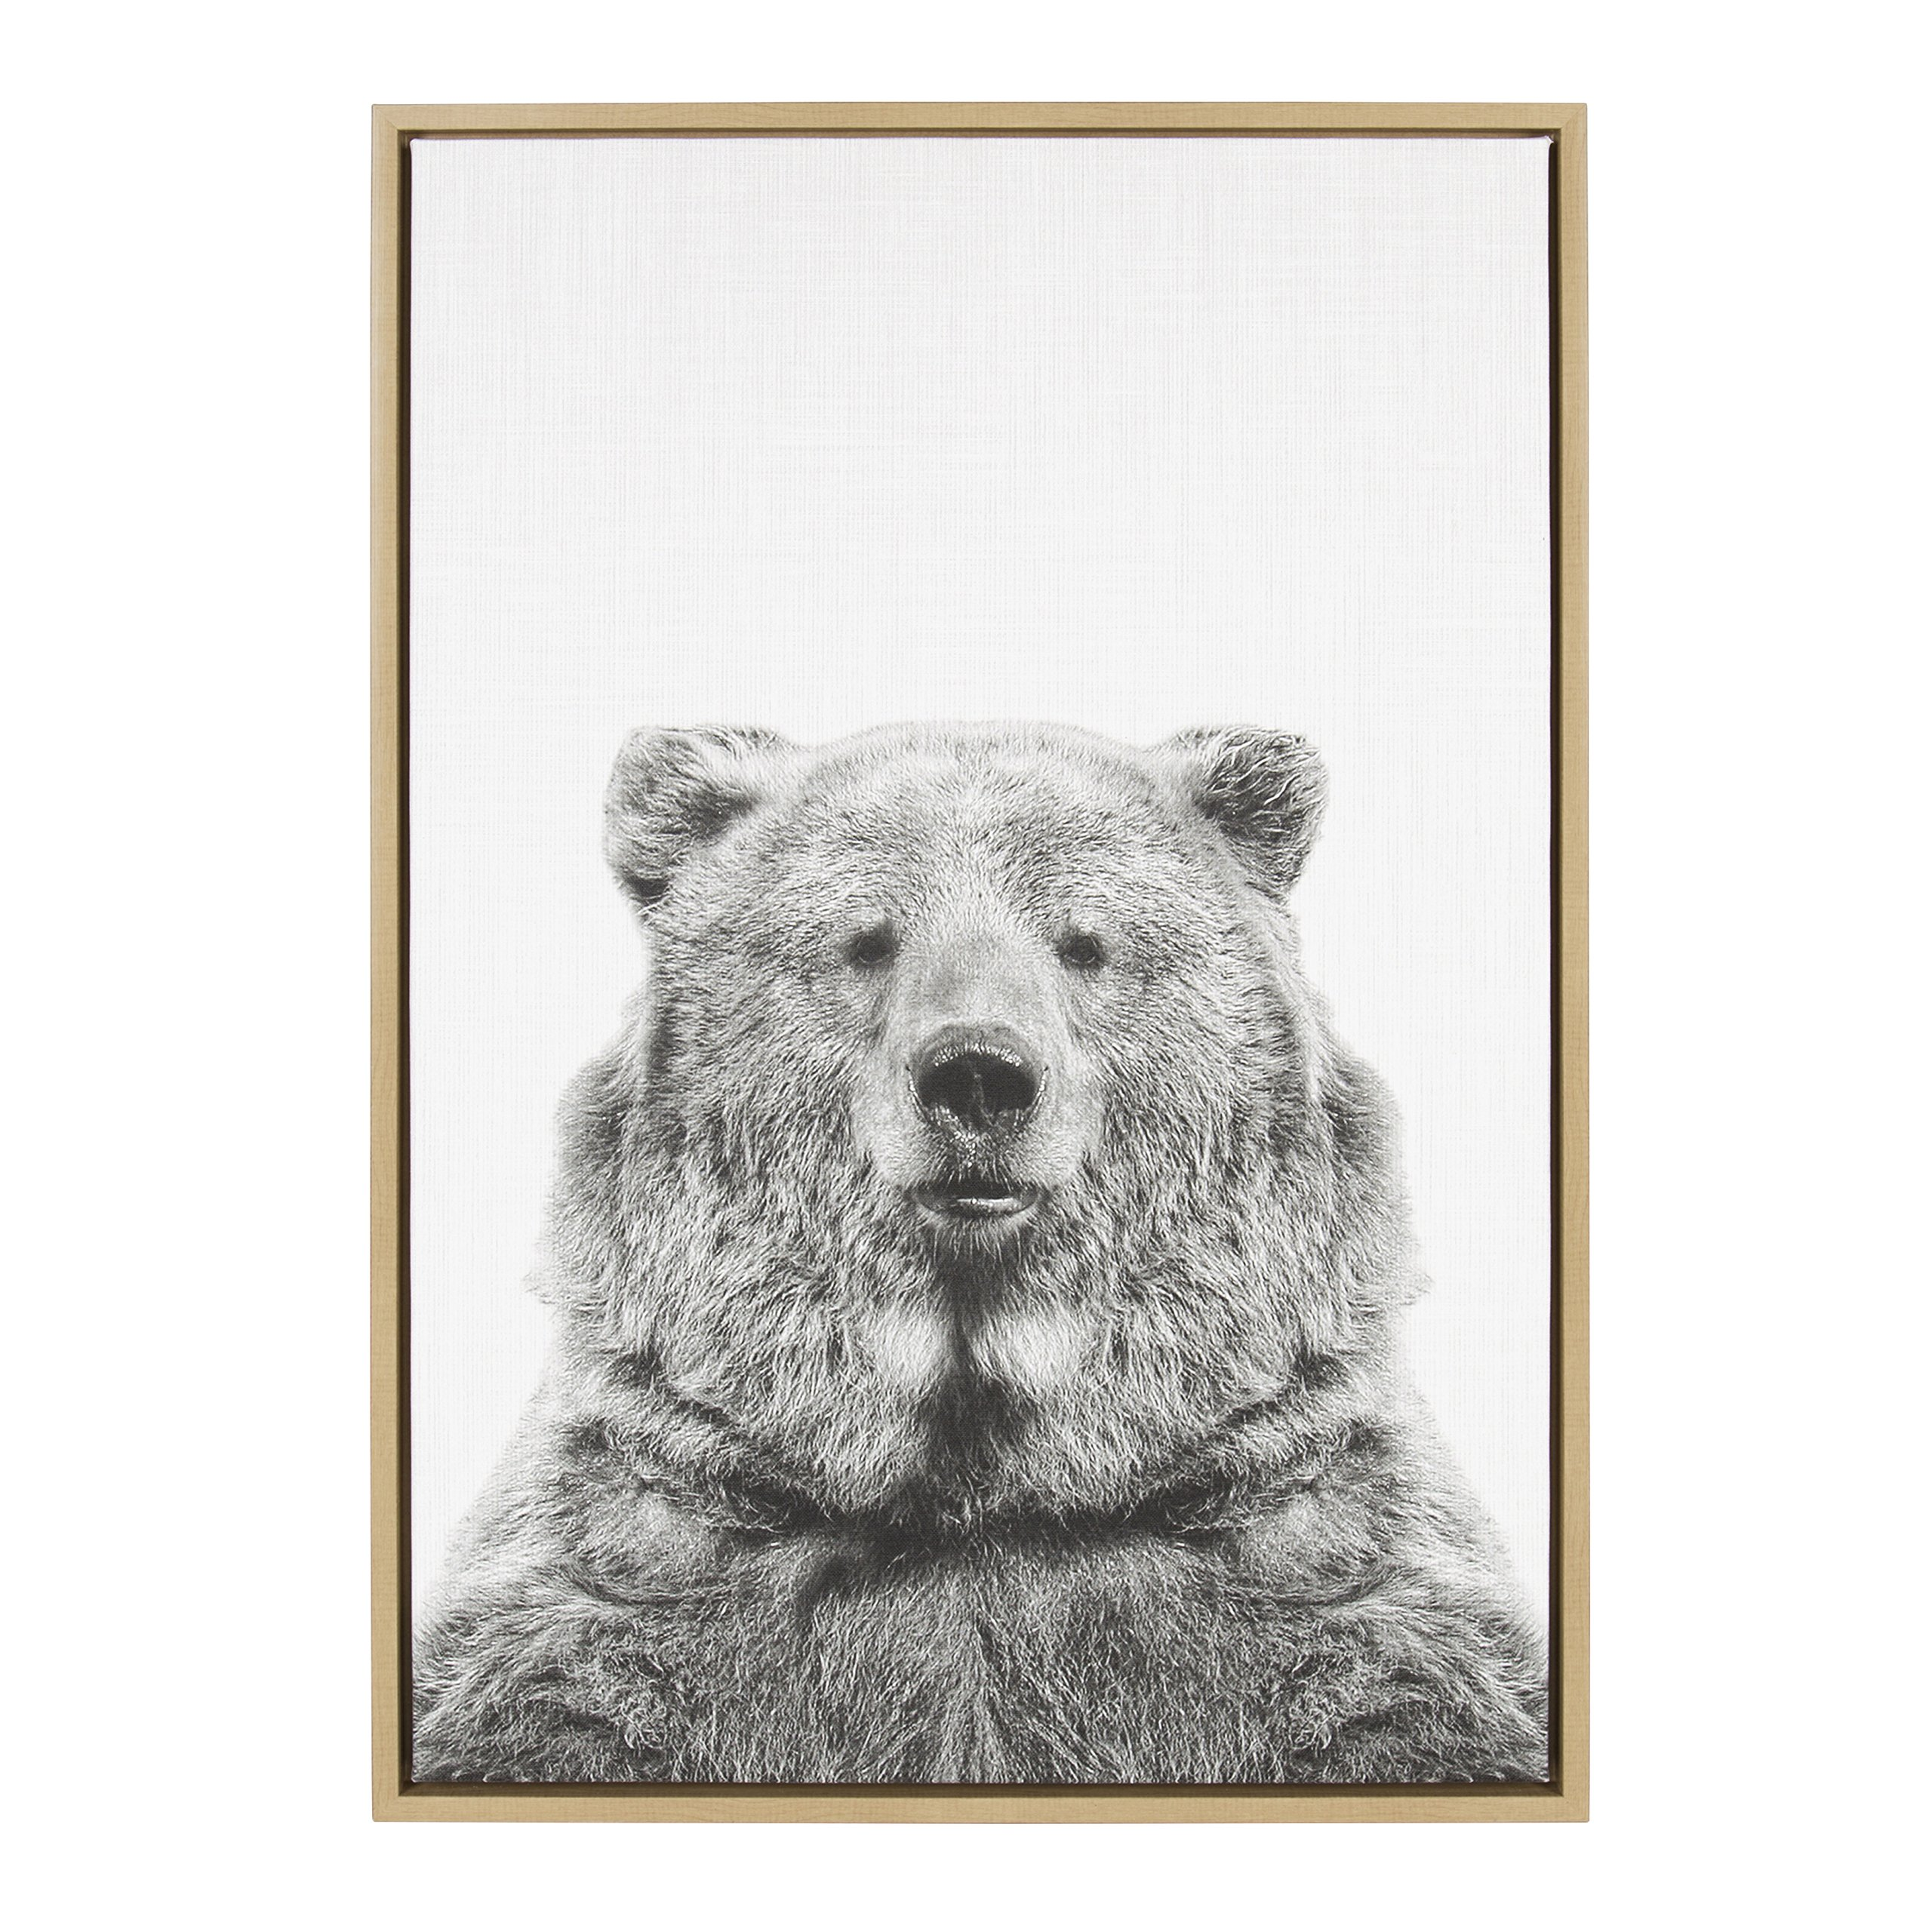 Kate and Laurel - Sylvie Bear Animal Print Black and White Portrait Framed Canvas Wall Art by Simon Te Tai, Natural 23 x 33